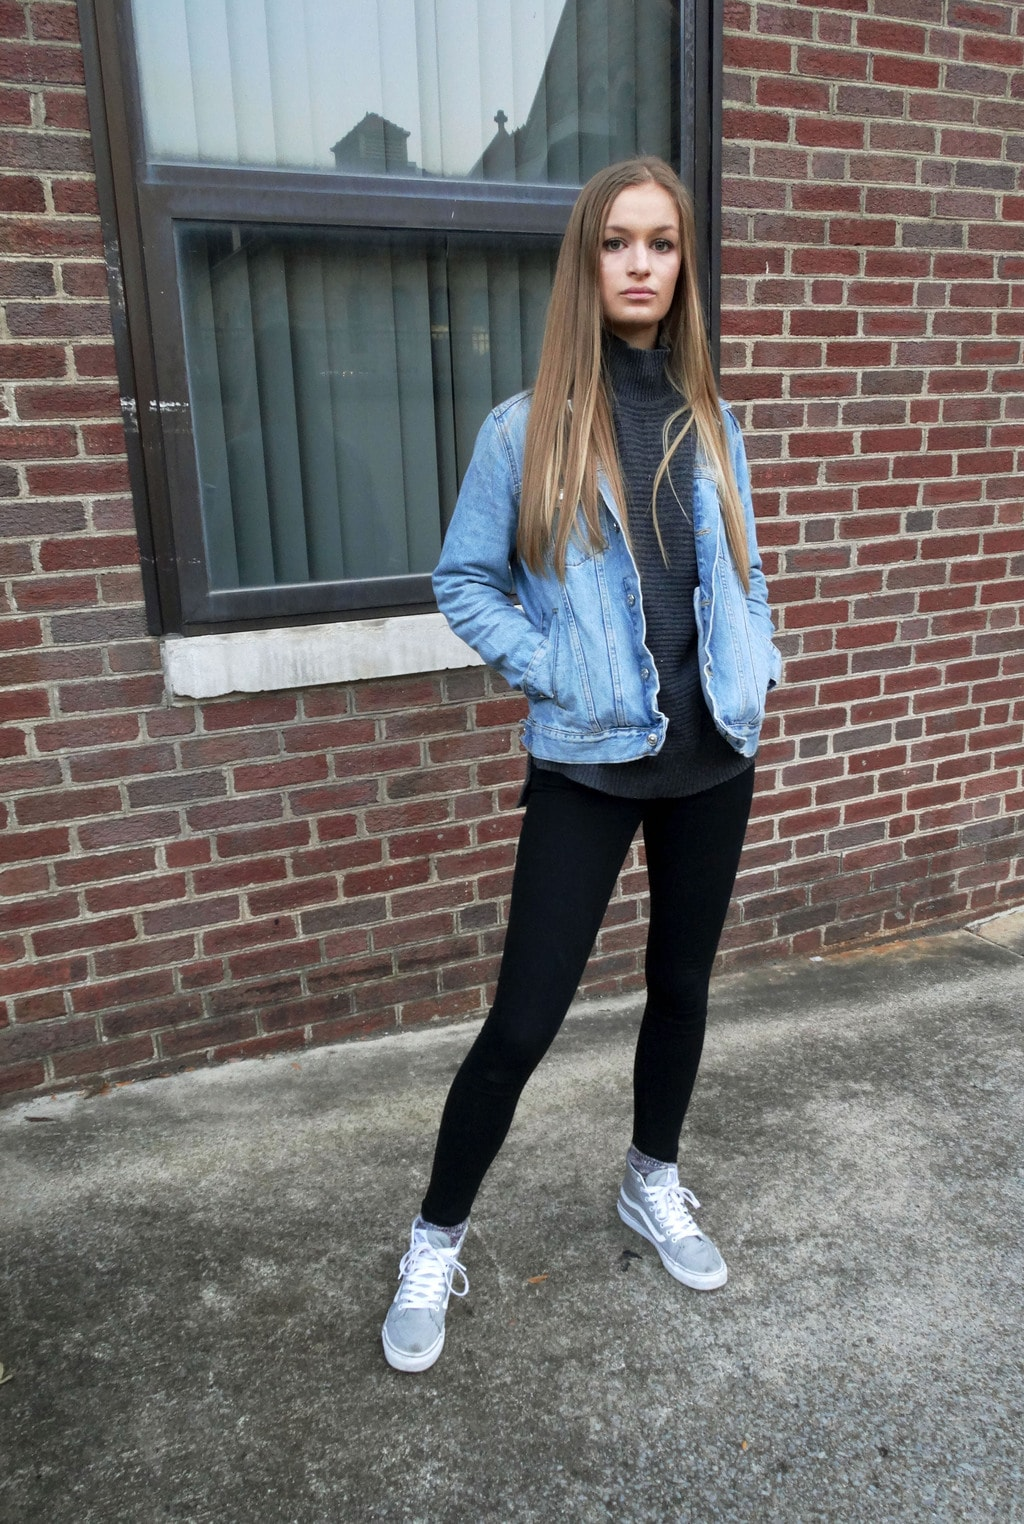 This student wears a space grey turtleneck sweater with an oversized, distressed denim jacket, black leggings, and sporty grey sneakers with white detailing.